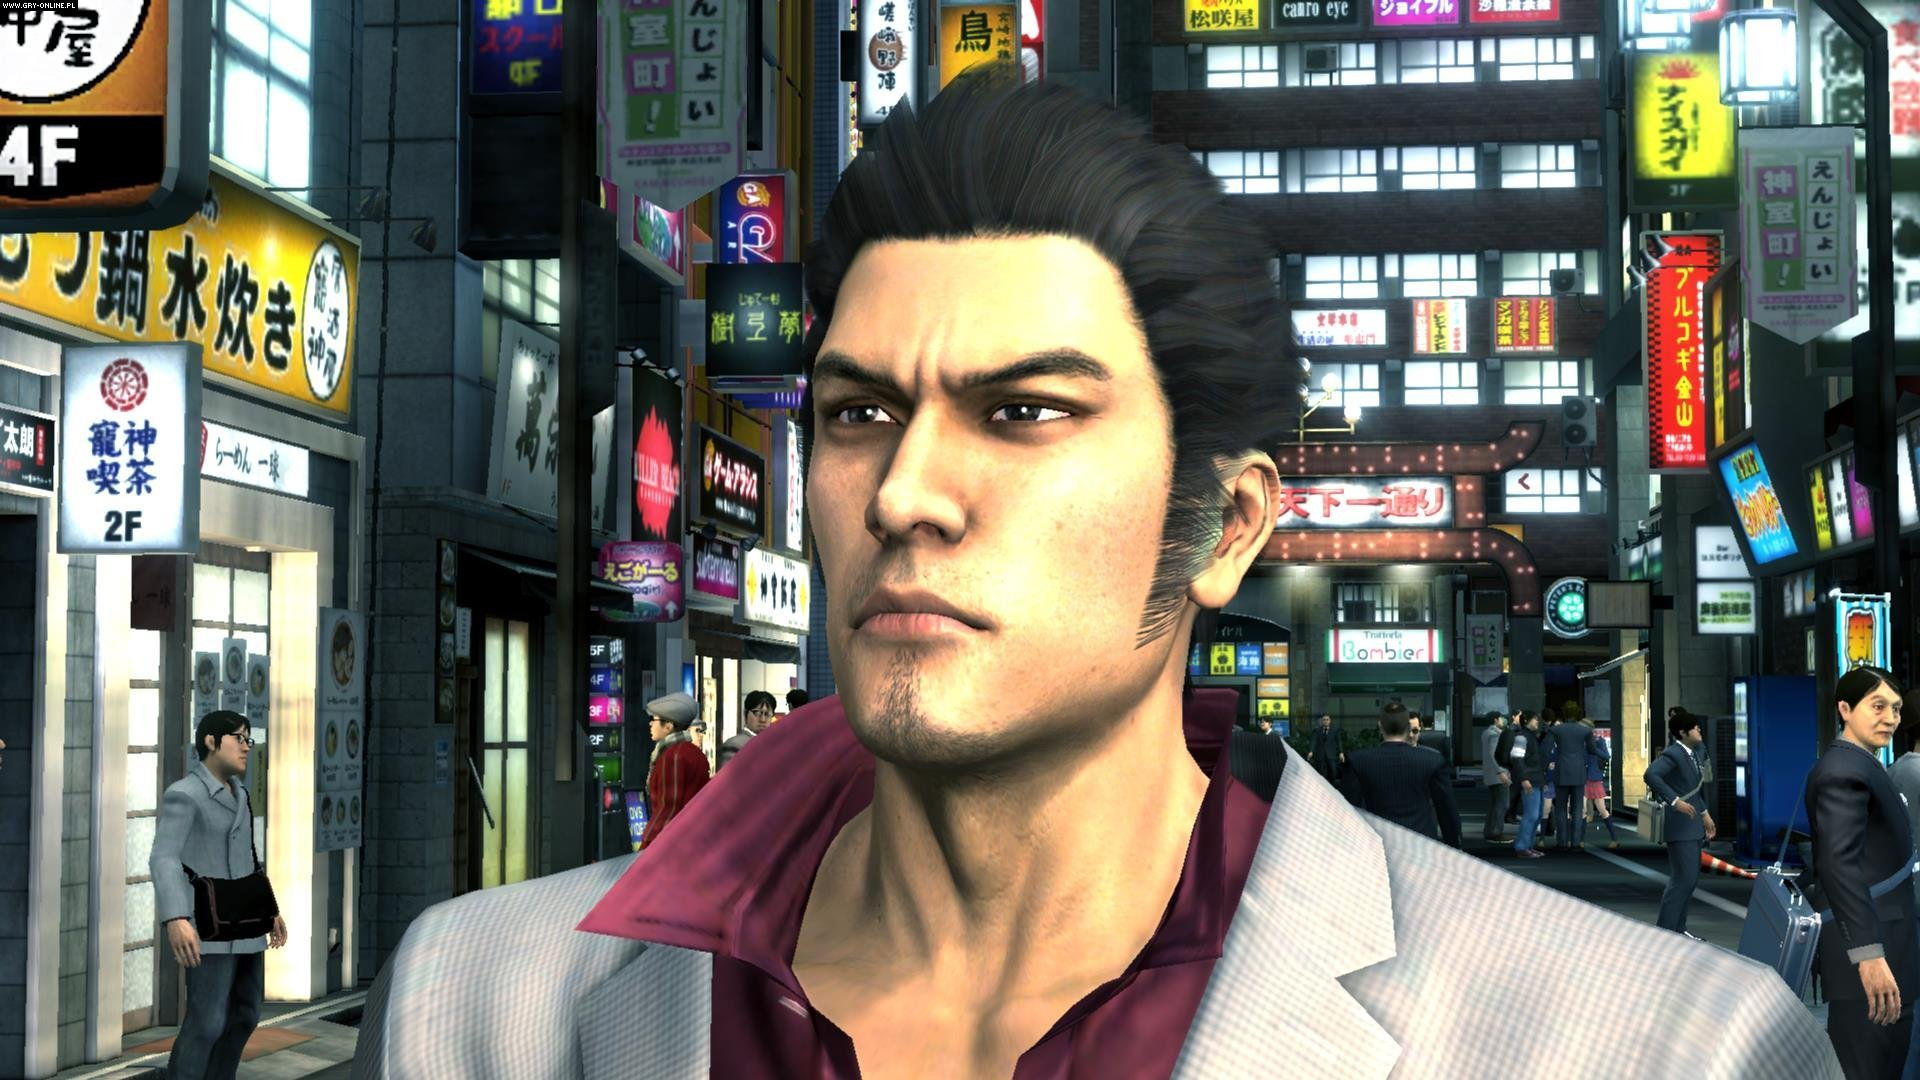 Yakuza 3 Remastered PS4 Gry Screen 28/45, SEGA